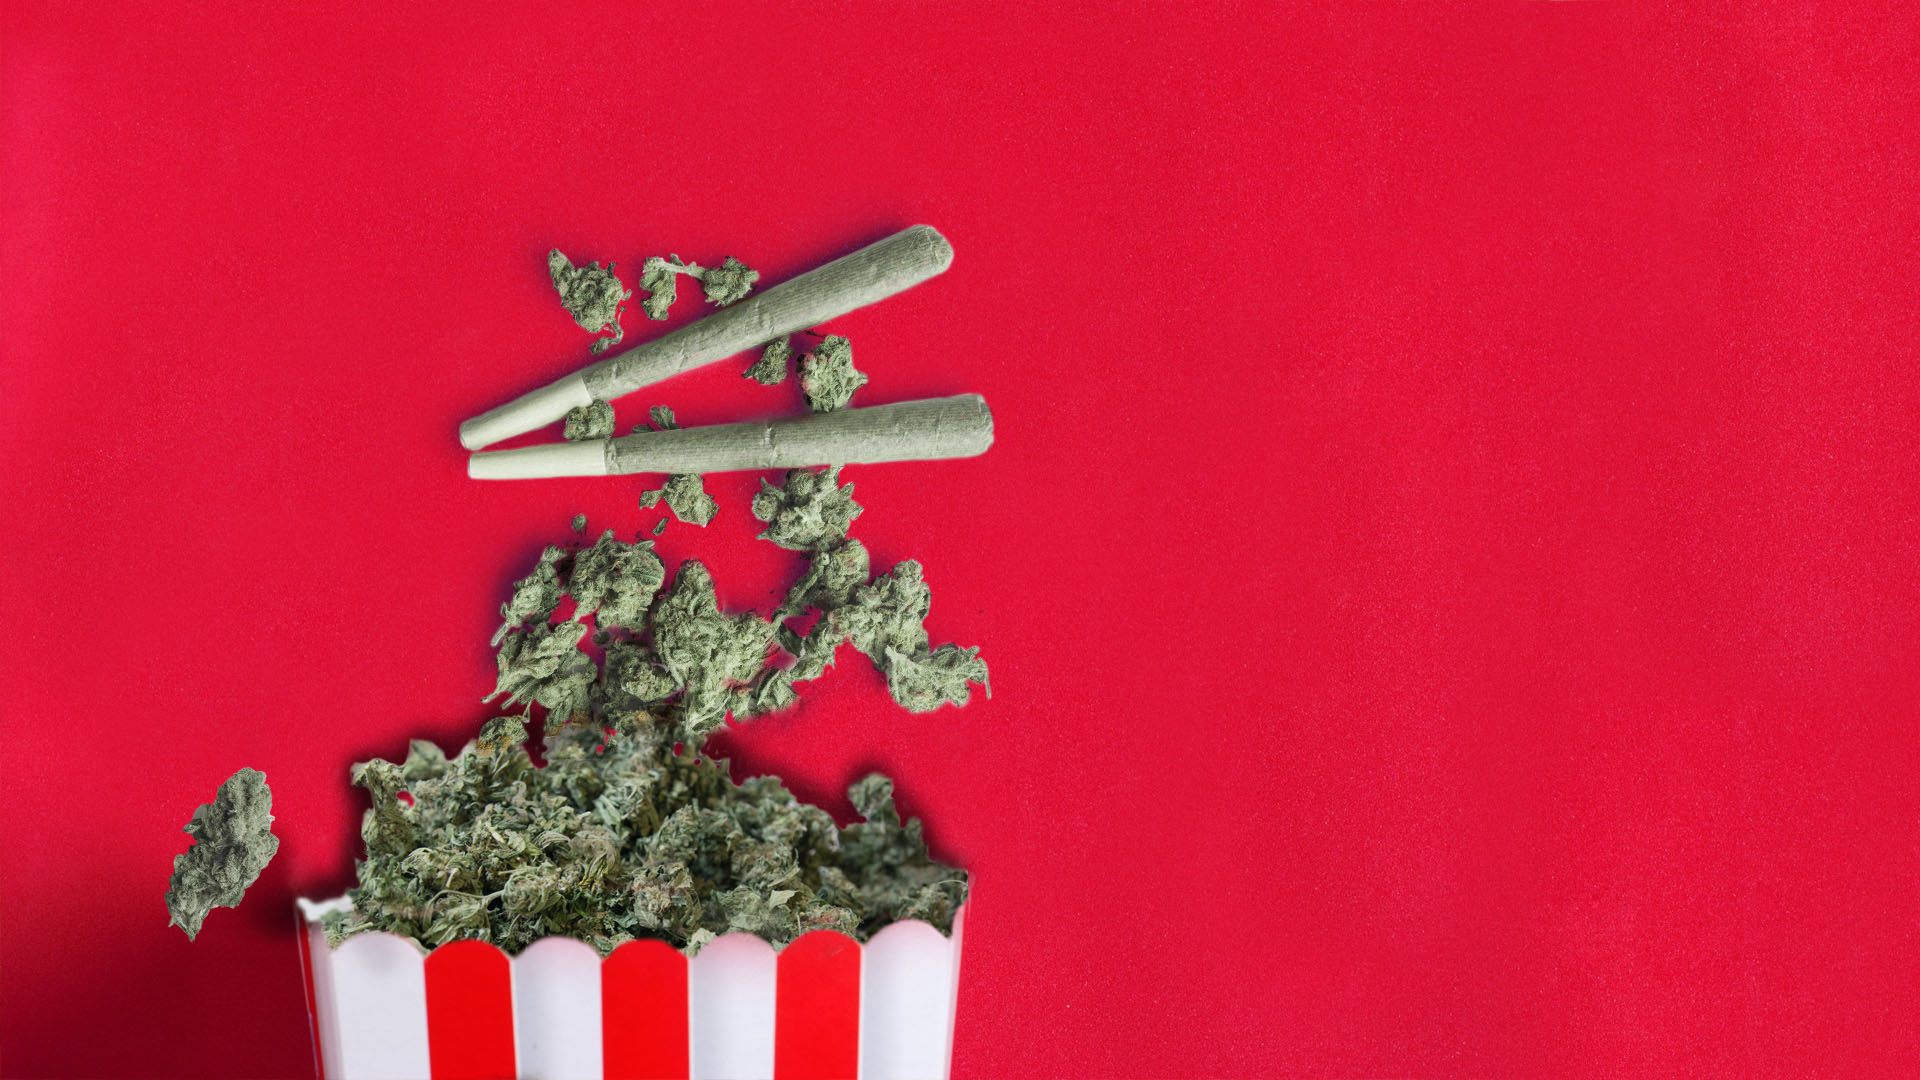 Smoke a j and enjoy the movie